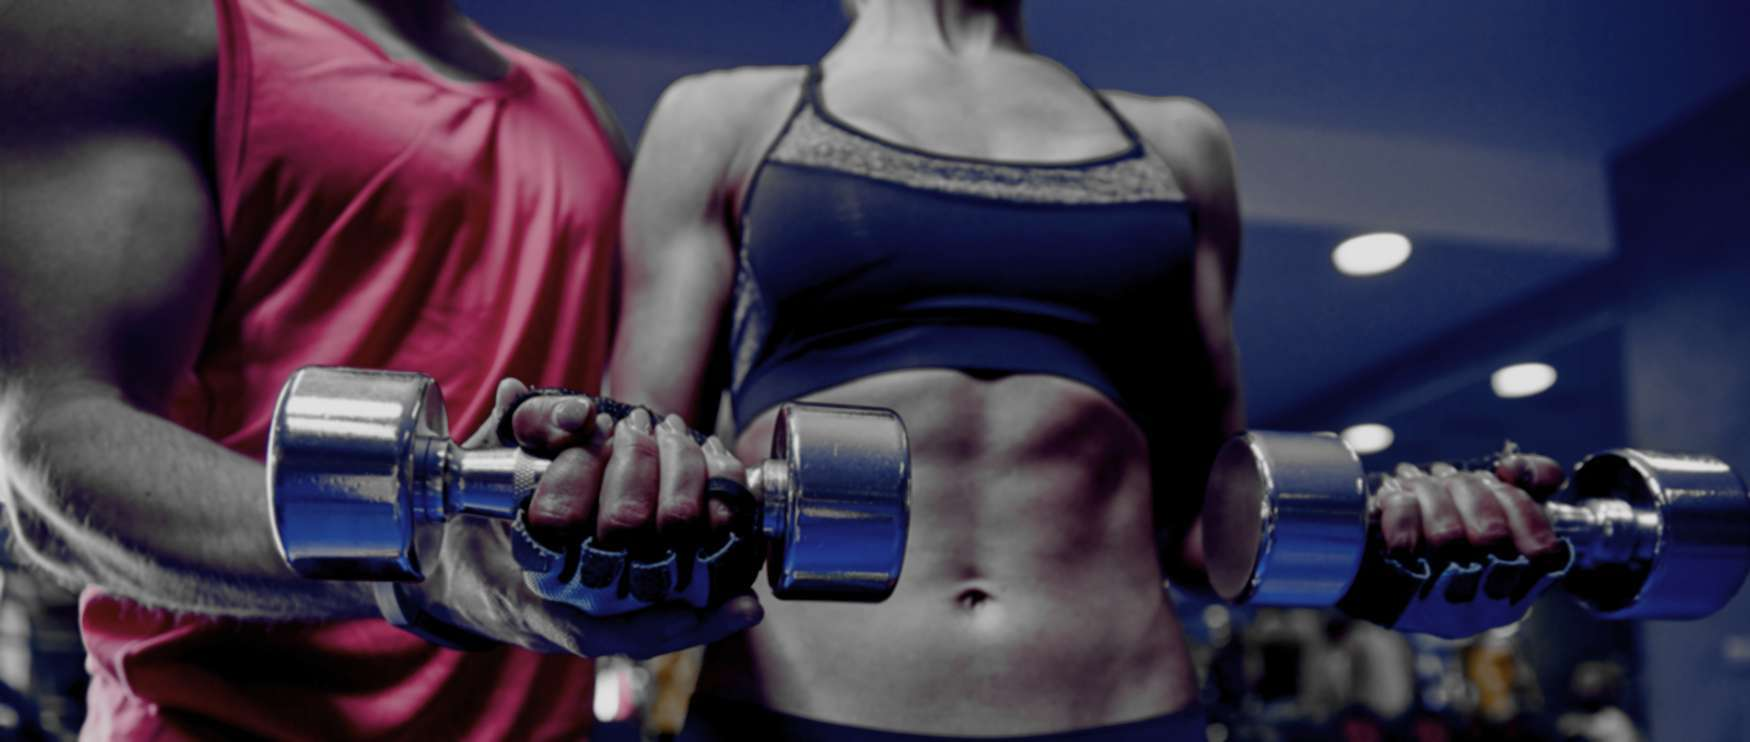 Personal Trainer Las Vegas. Personal training in Las Vegas, North Las Vegas, and Henderson, NV. Custom personal training for any and every fitness level.